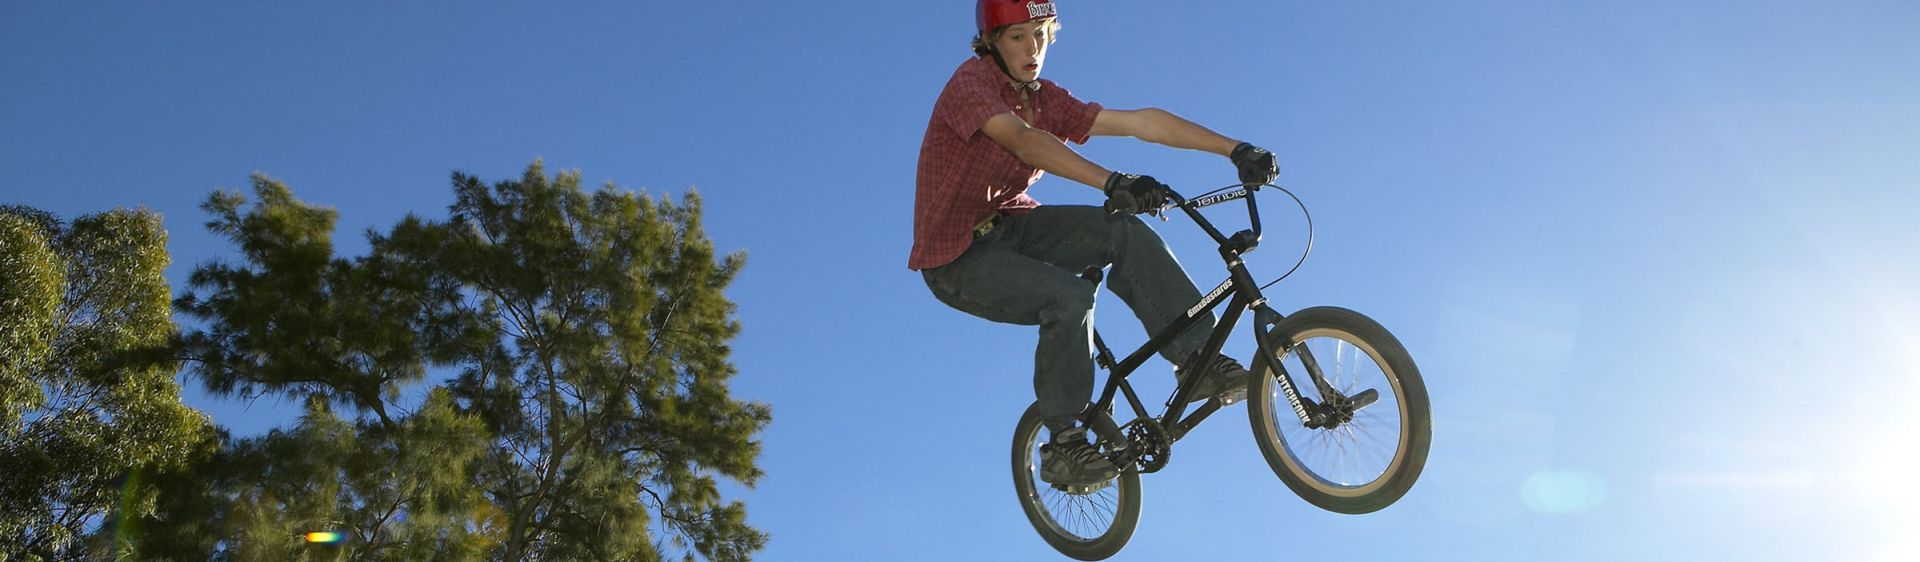 Teenager performing a BMX stunt at Jamison Park in Penrith